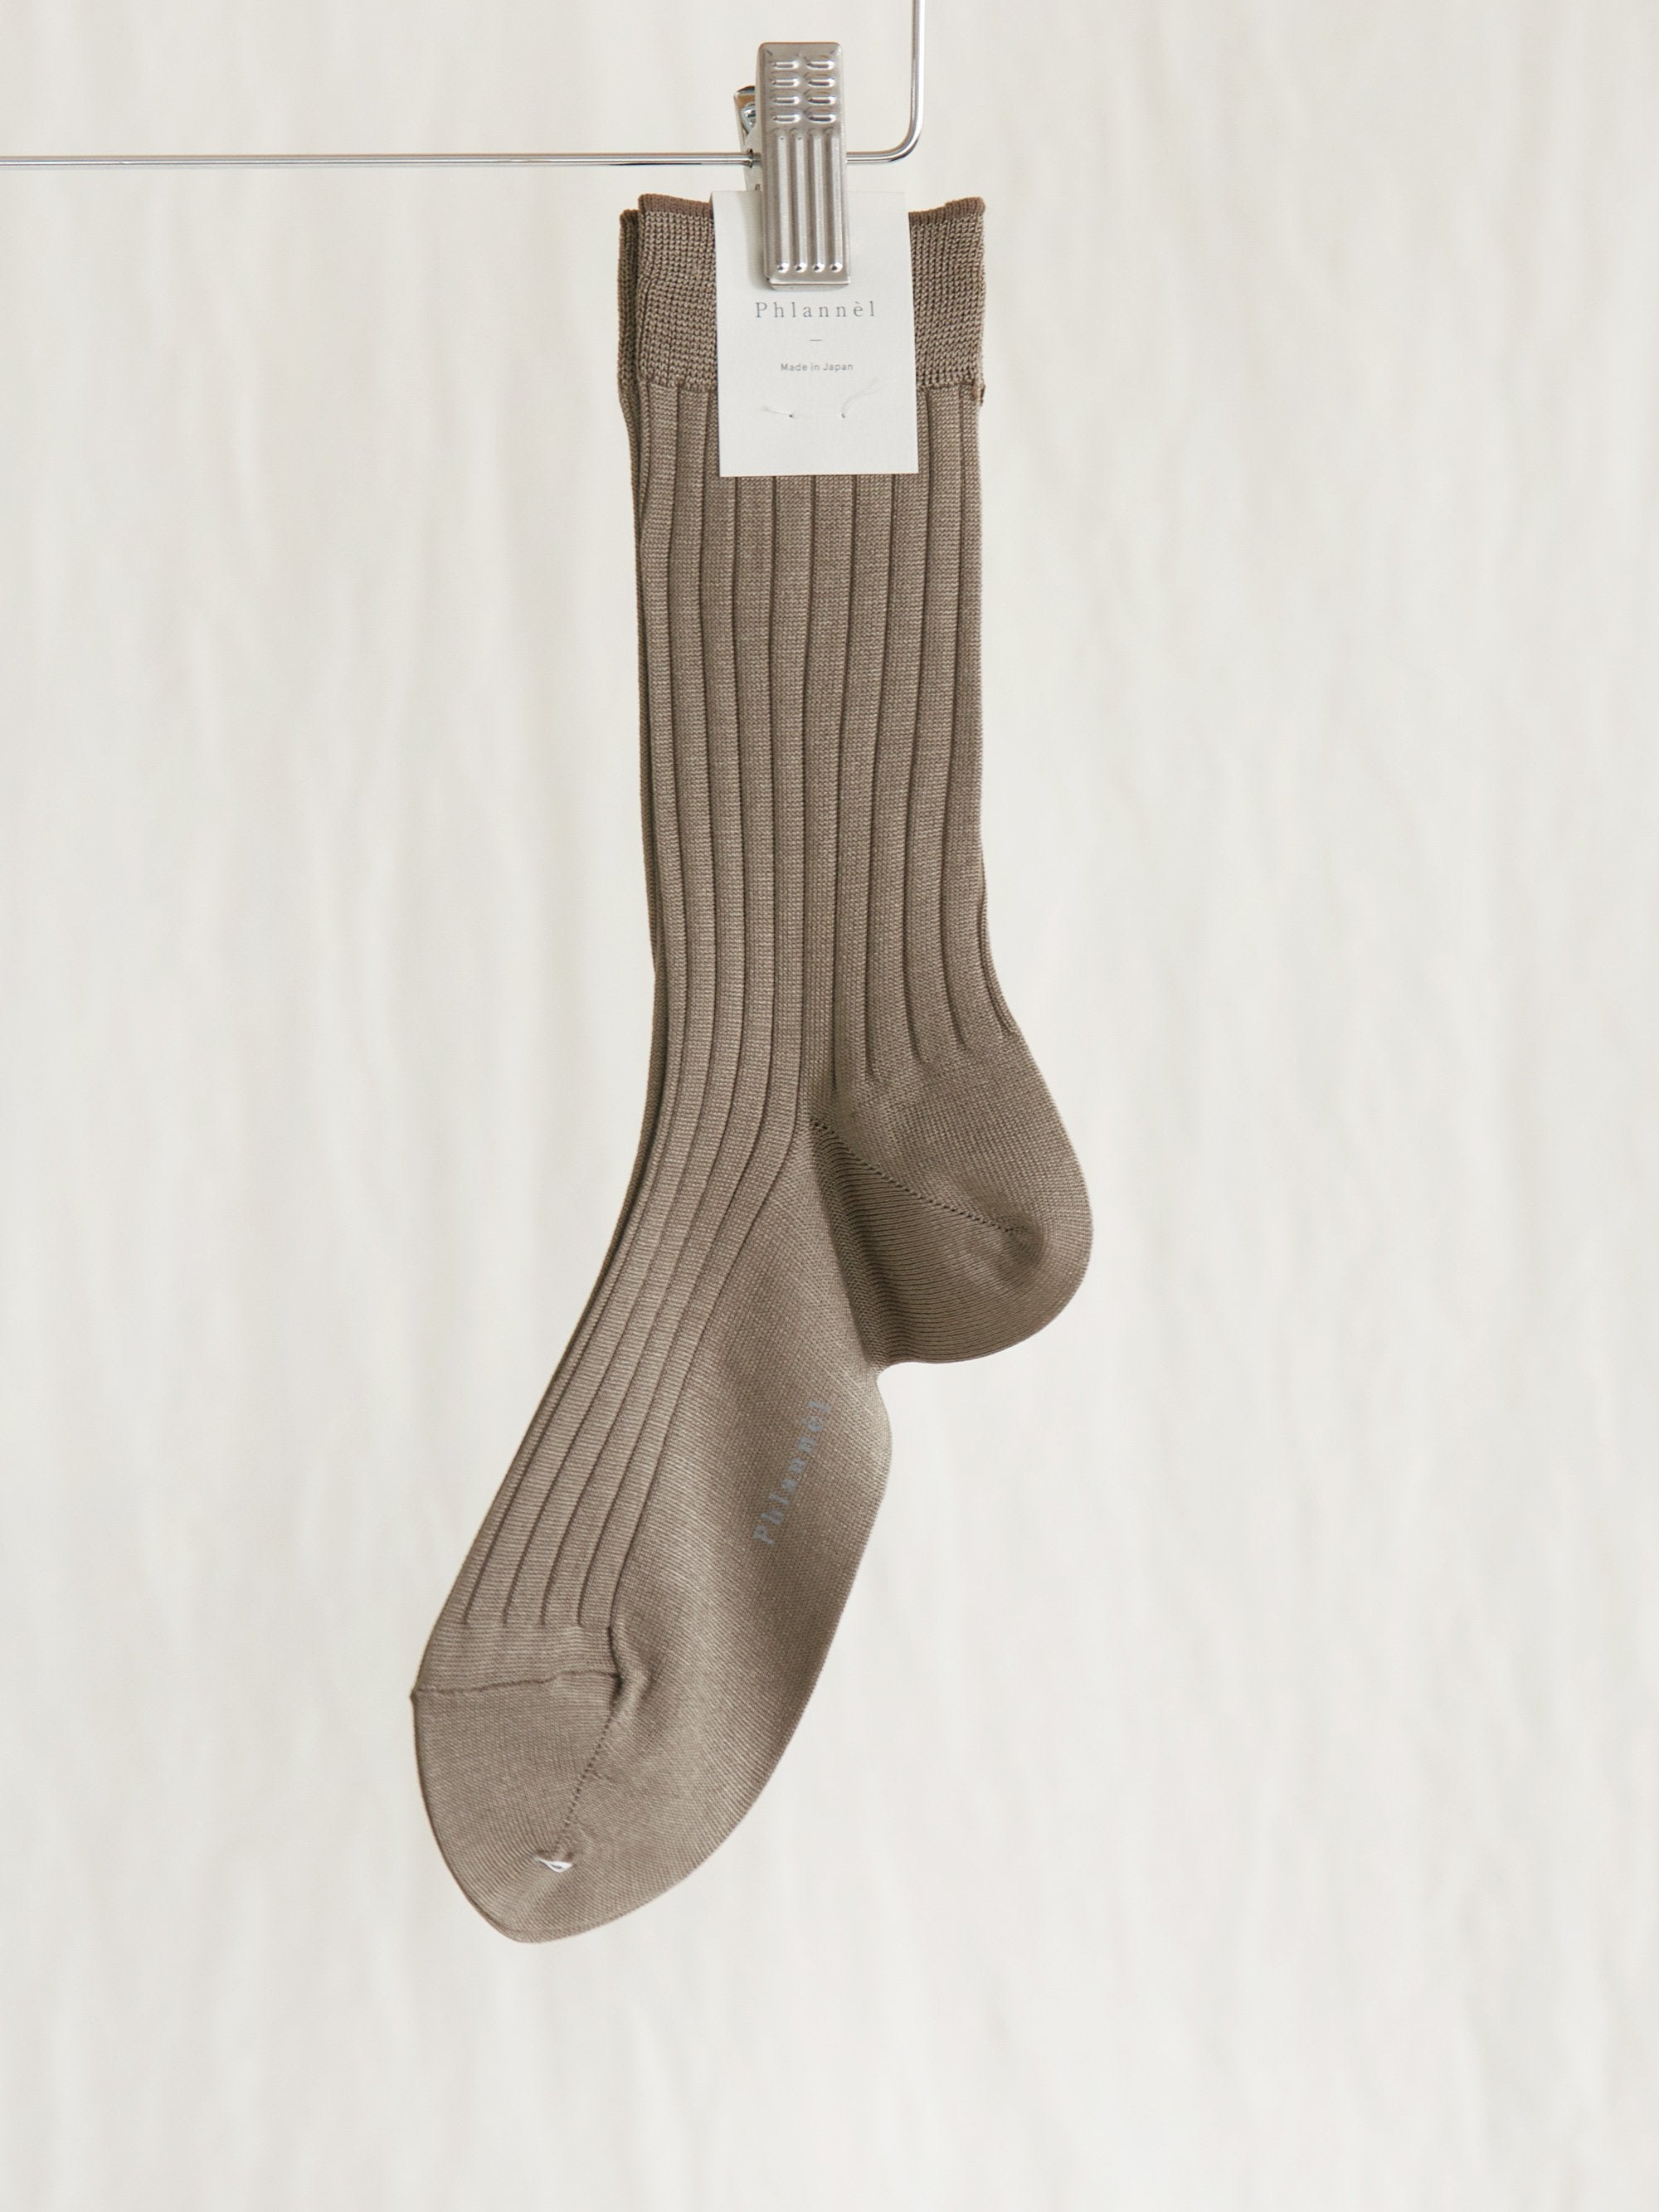 Namu Shop - Phlannel Silk Rib Socks